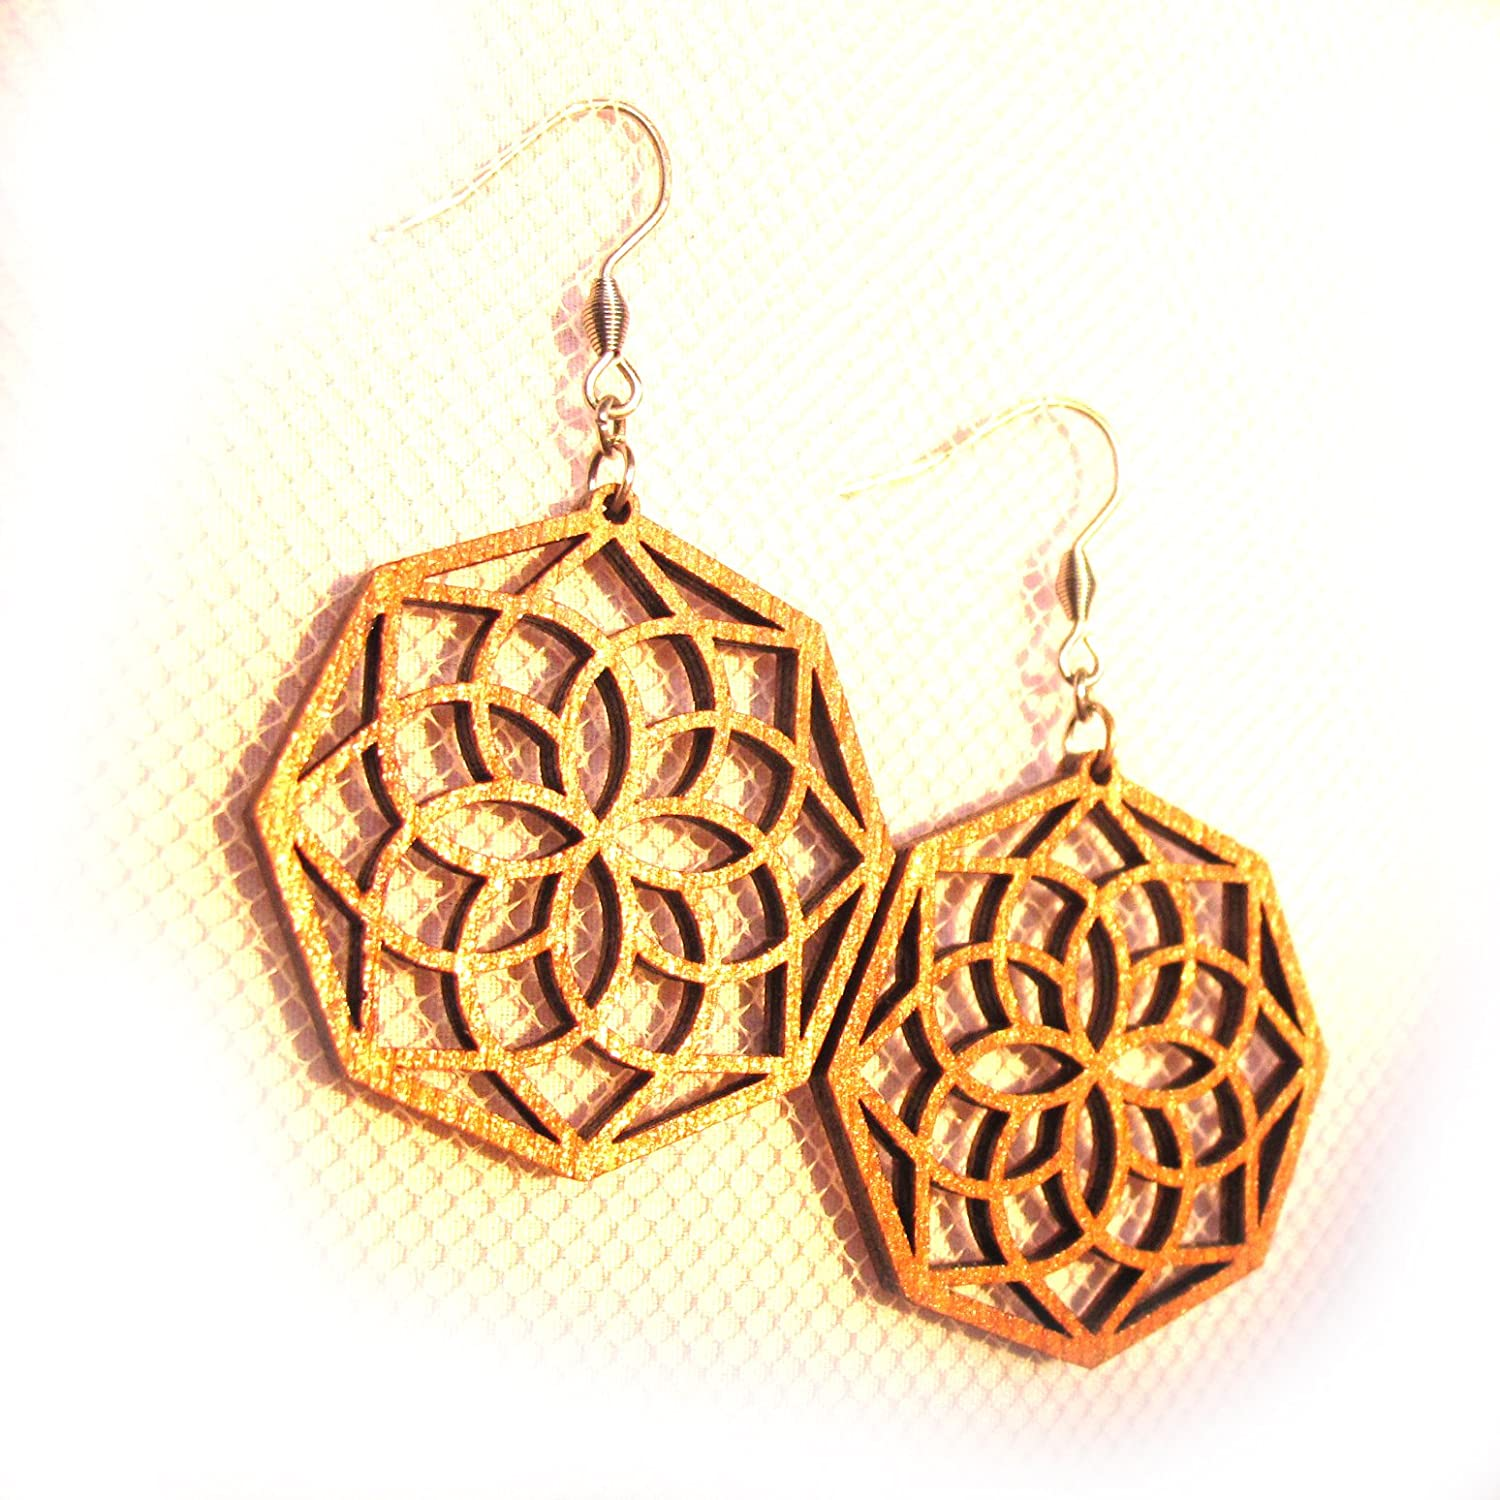 Wooden earrings Dreamcatcher, Hippie festival Jewelry, 0g, The Energy of Geometry Art